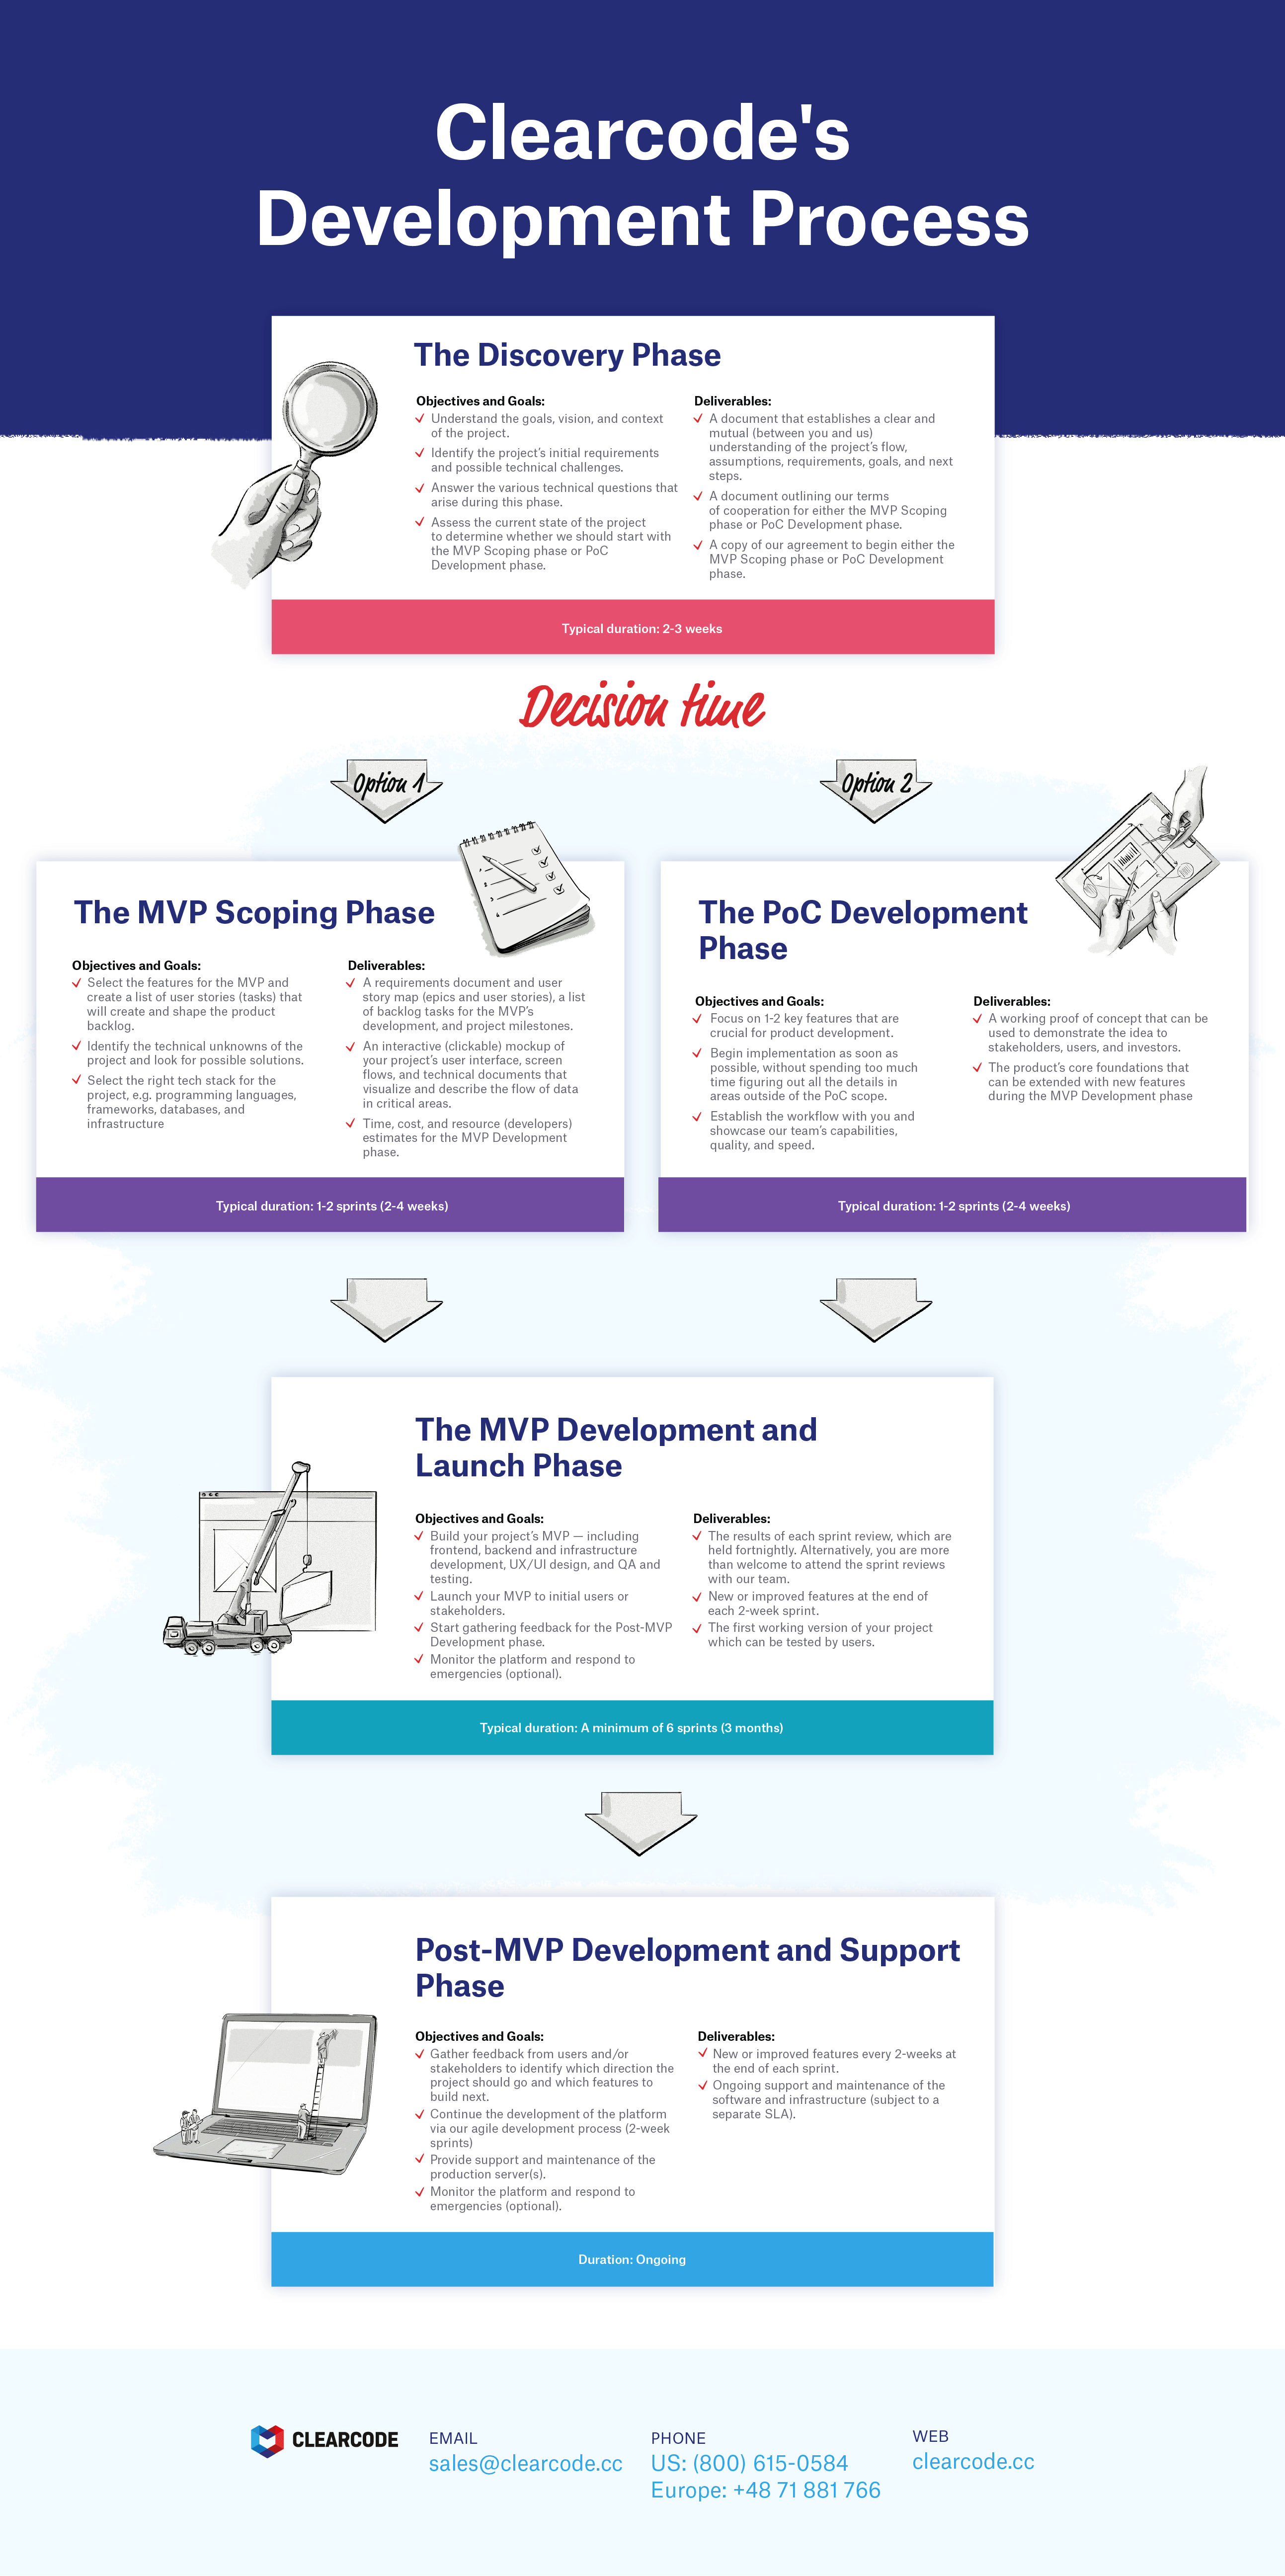 Clearcode's Development Process-infographic